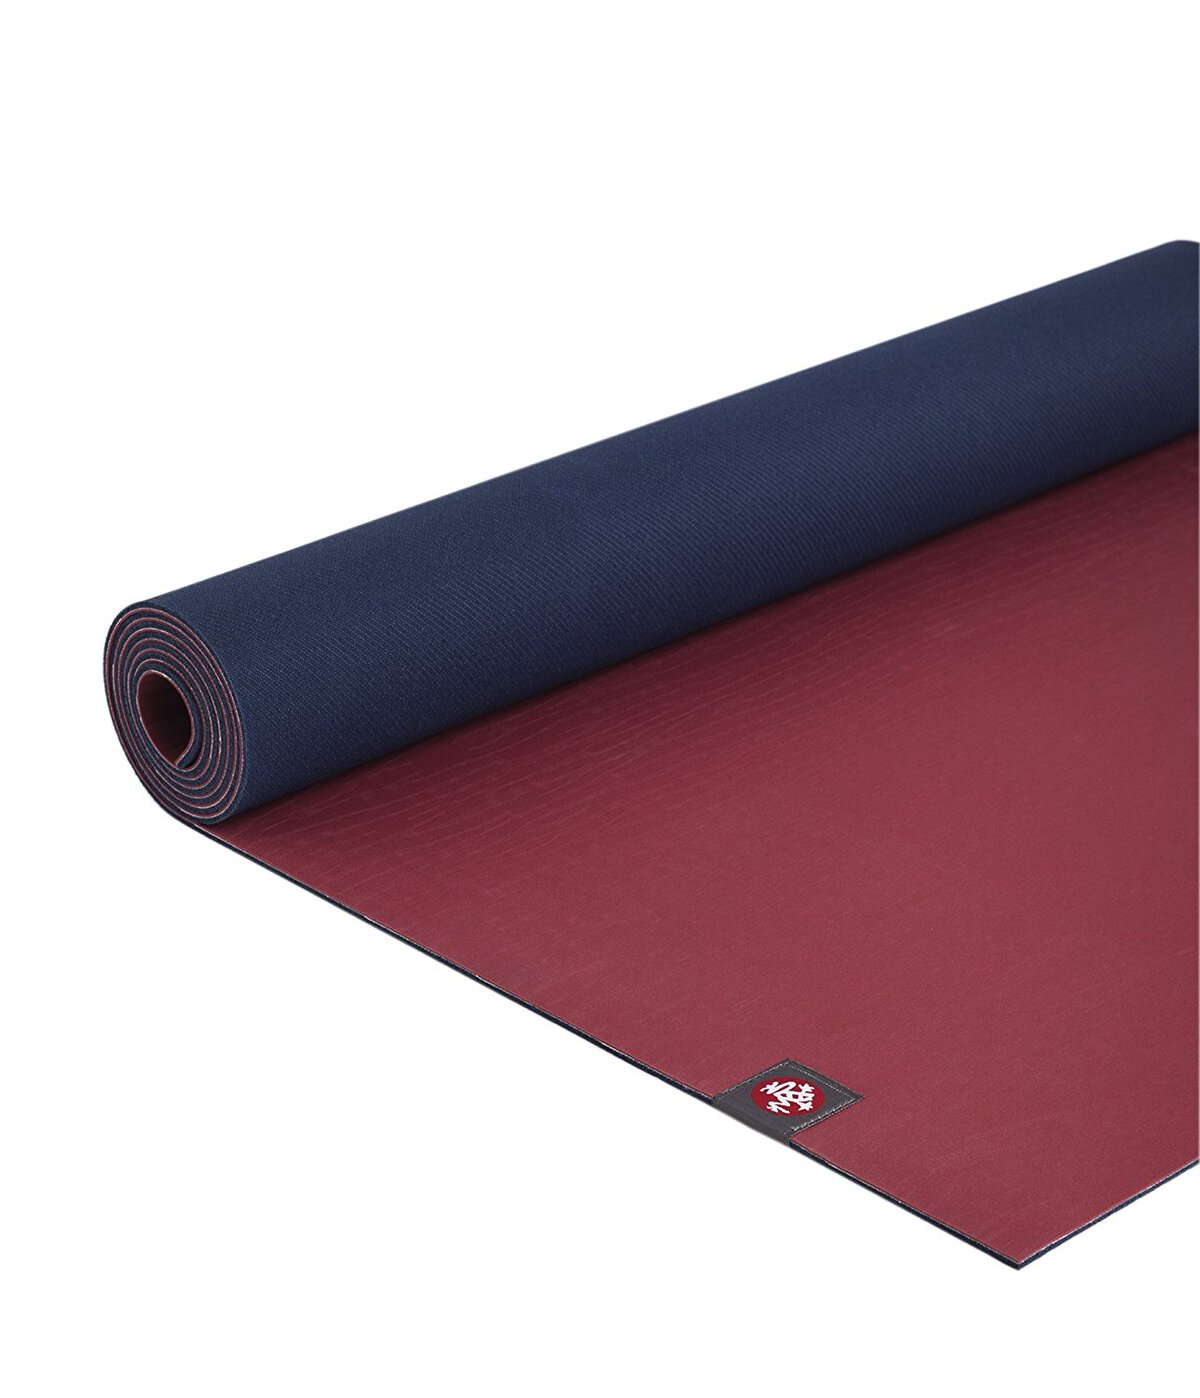 Manduka Yoga Mat | The Best Christmas Gifts (that you can buy without leaving the house!) | CatchingSeeds.com